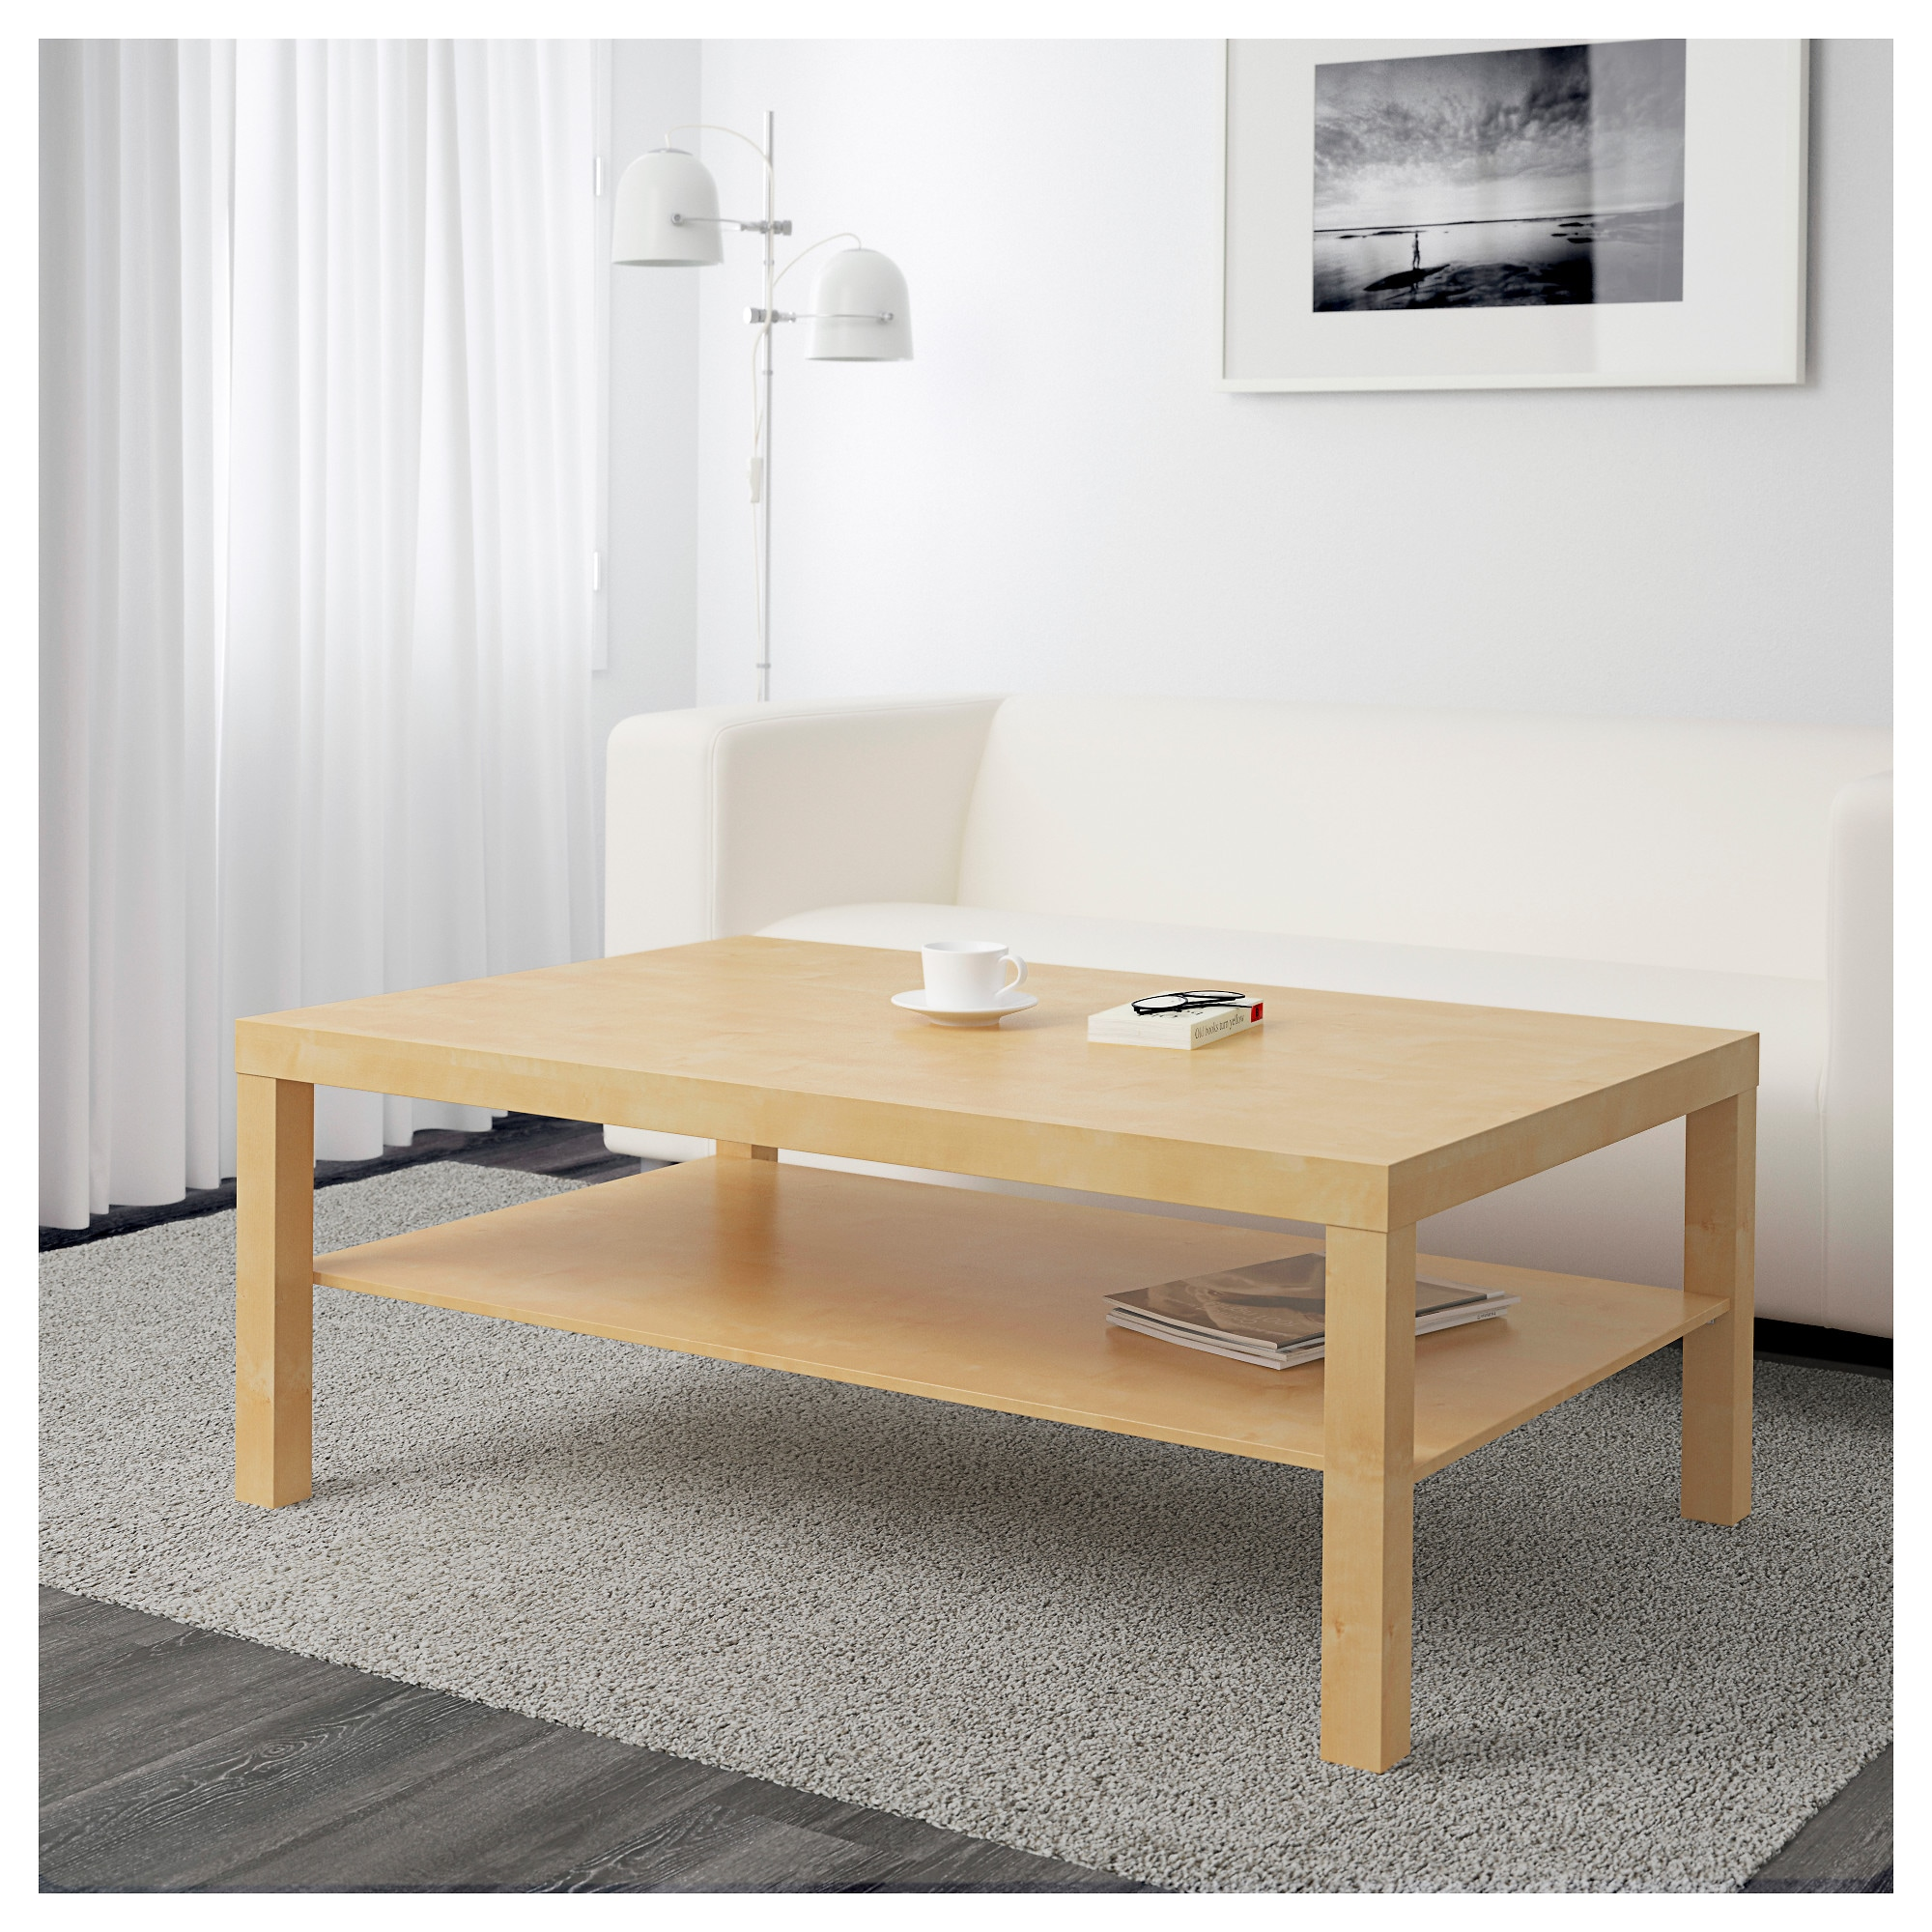 0452439_PE601391_S5 Incroyable De Table Basse Lack Ikea